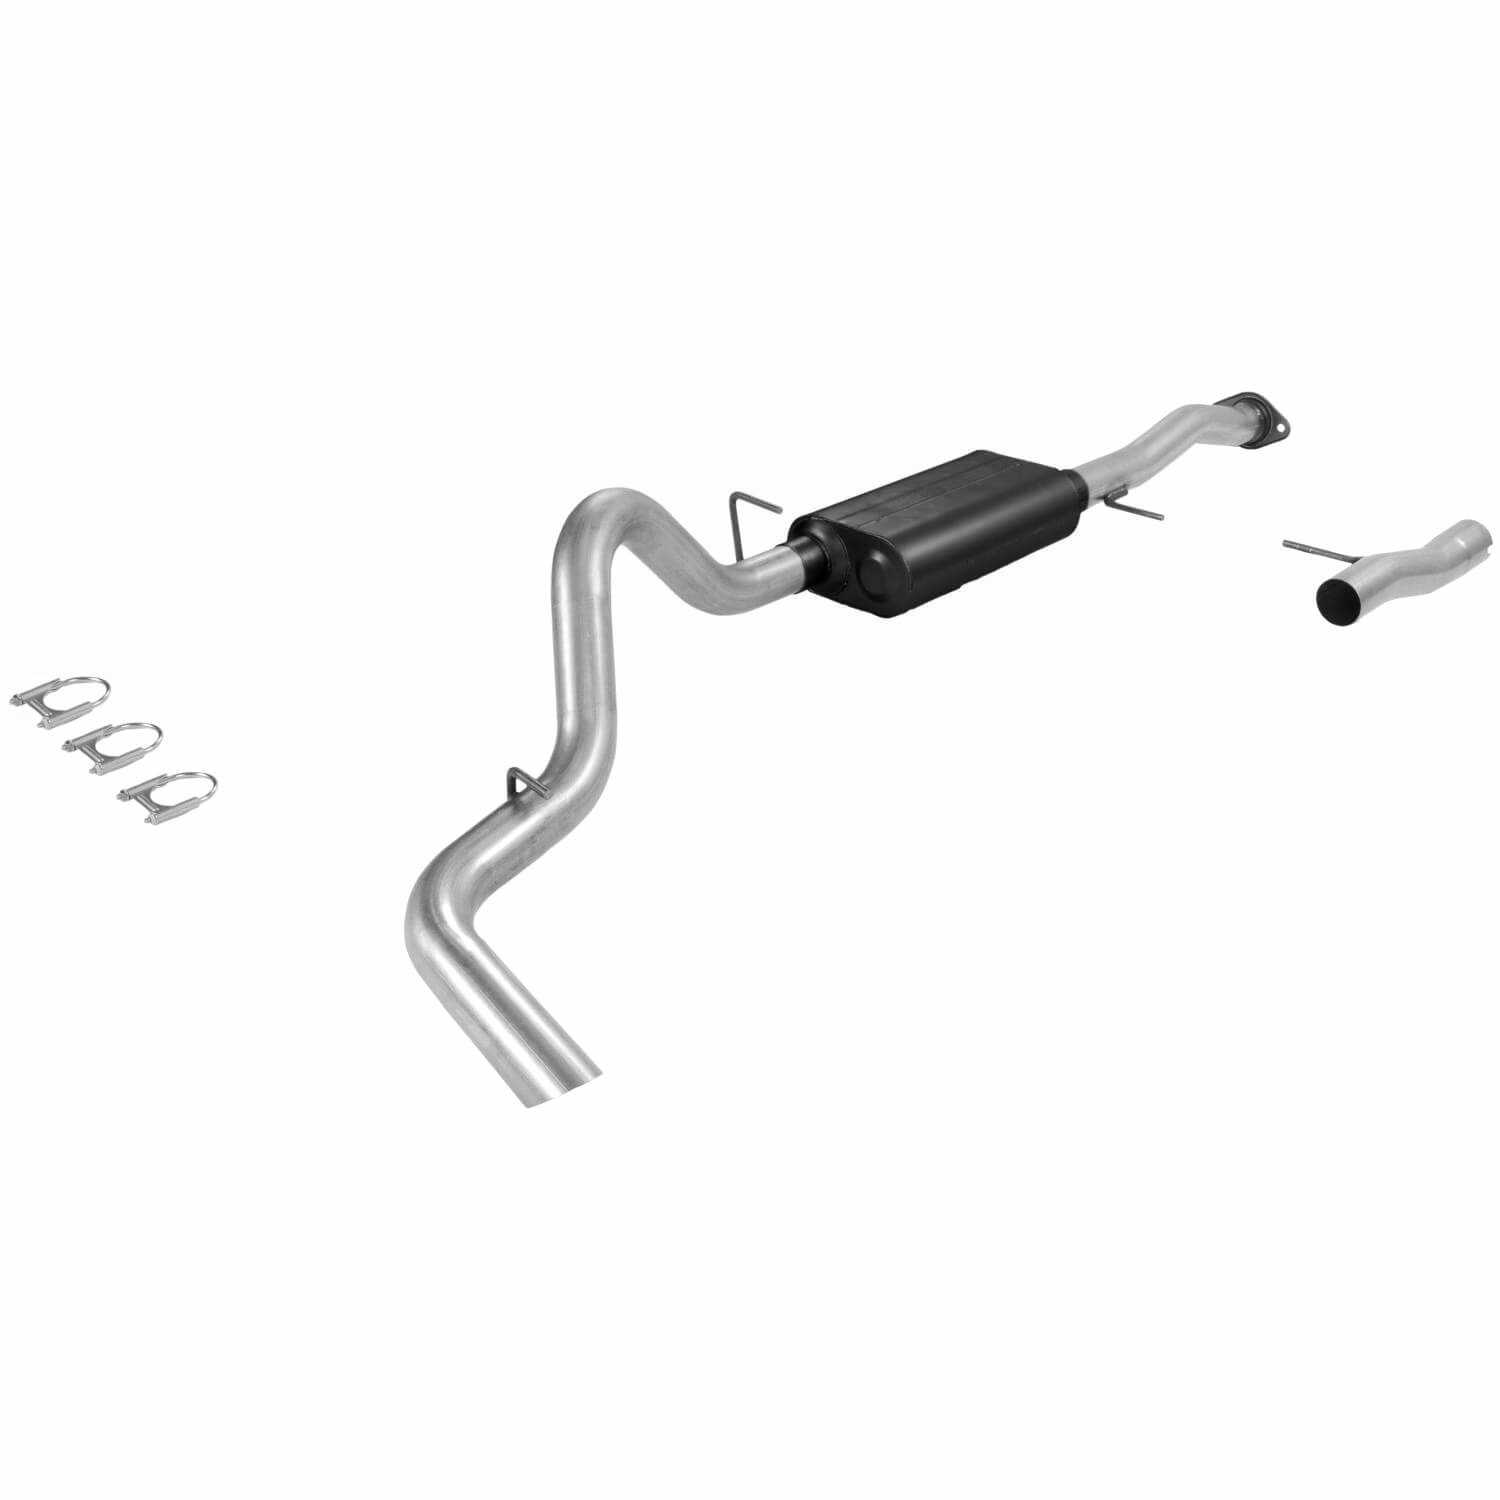 Flowmaster American Thunder Cat Back Exhaust System 17162